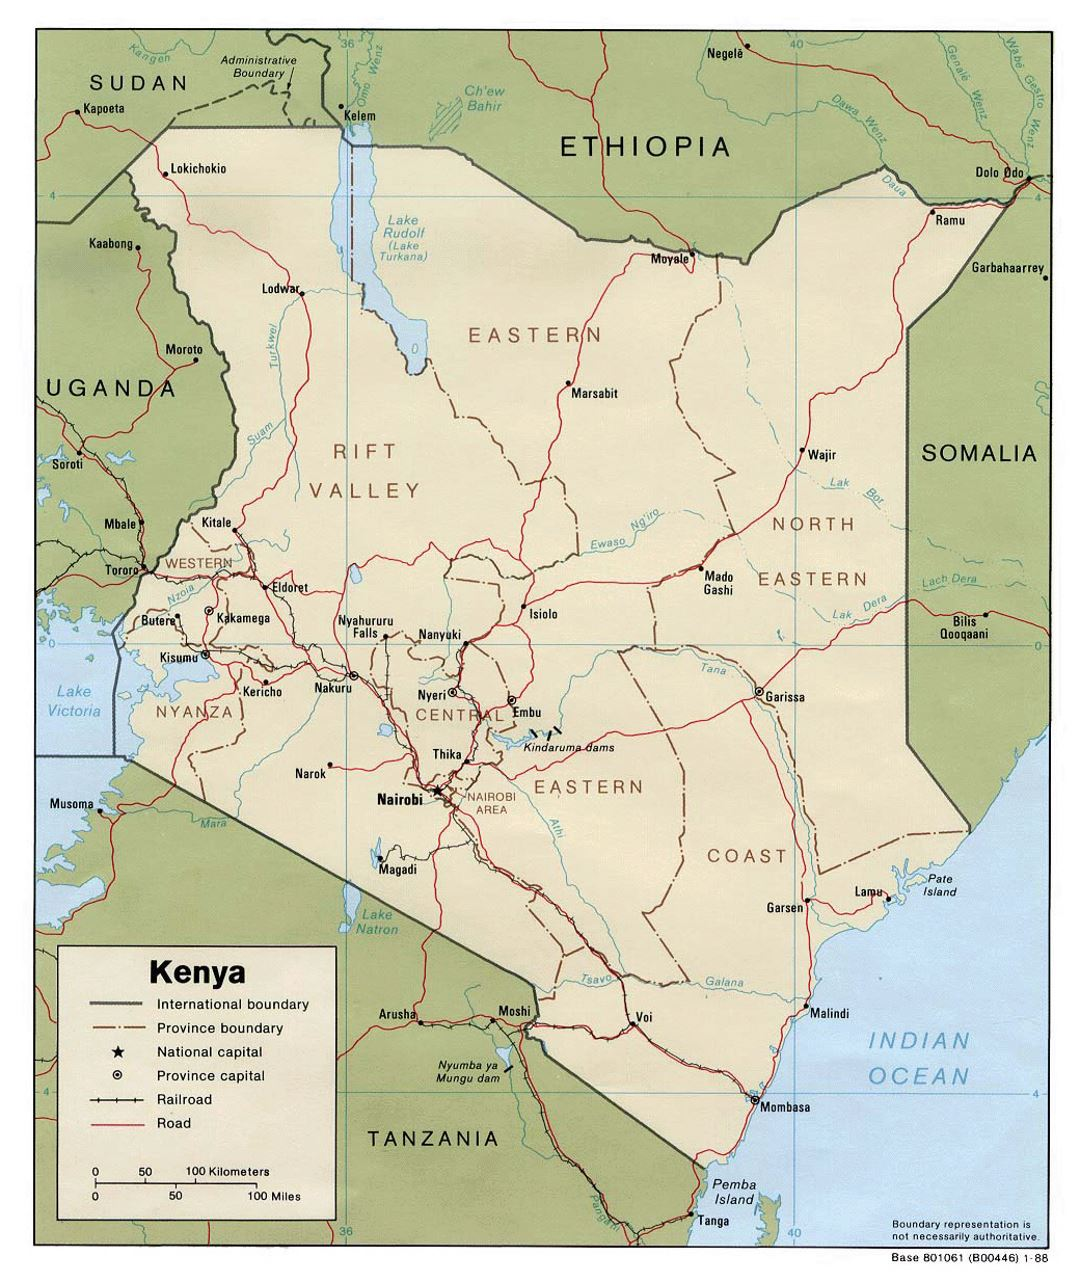 Detailed political and administrative map of Kenya with roads, railroads and major cities - 1988